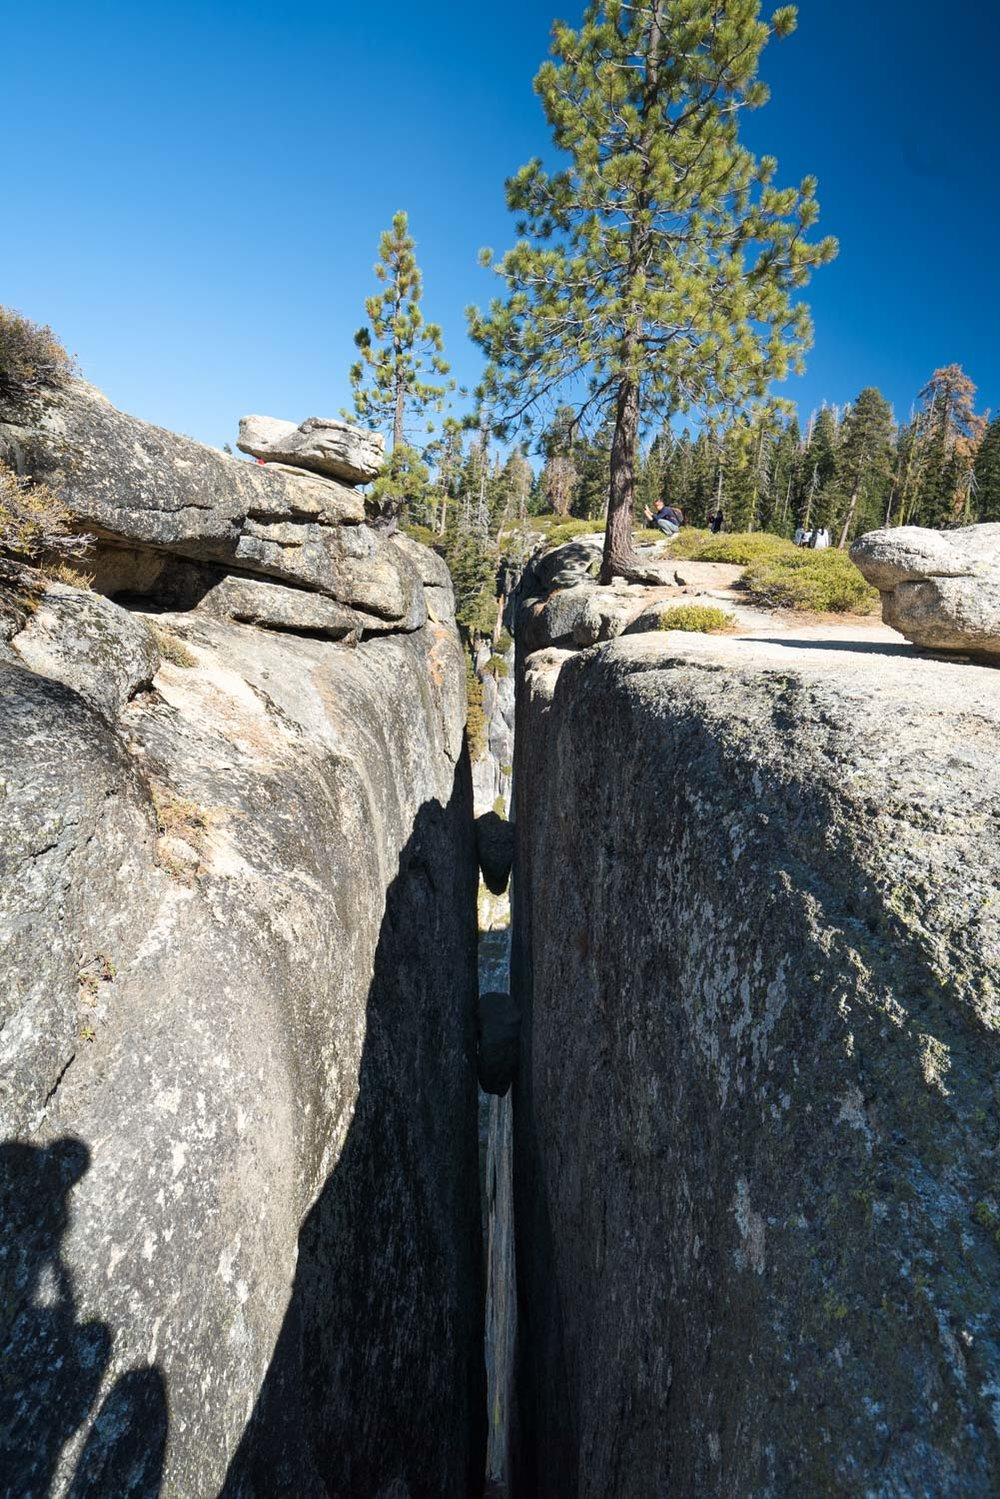 taft-point-fissures-yosemite-hike-305603.jpg